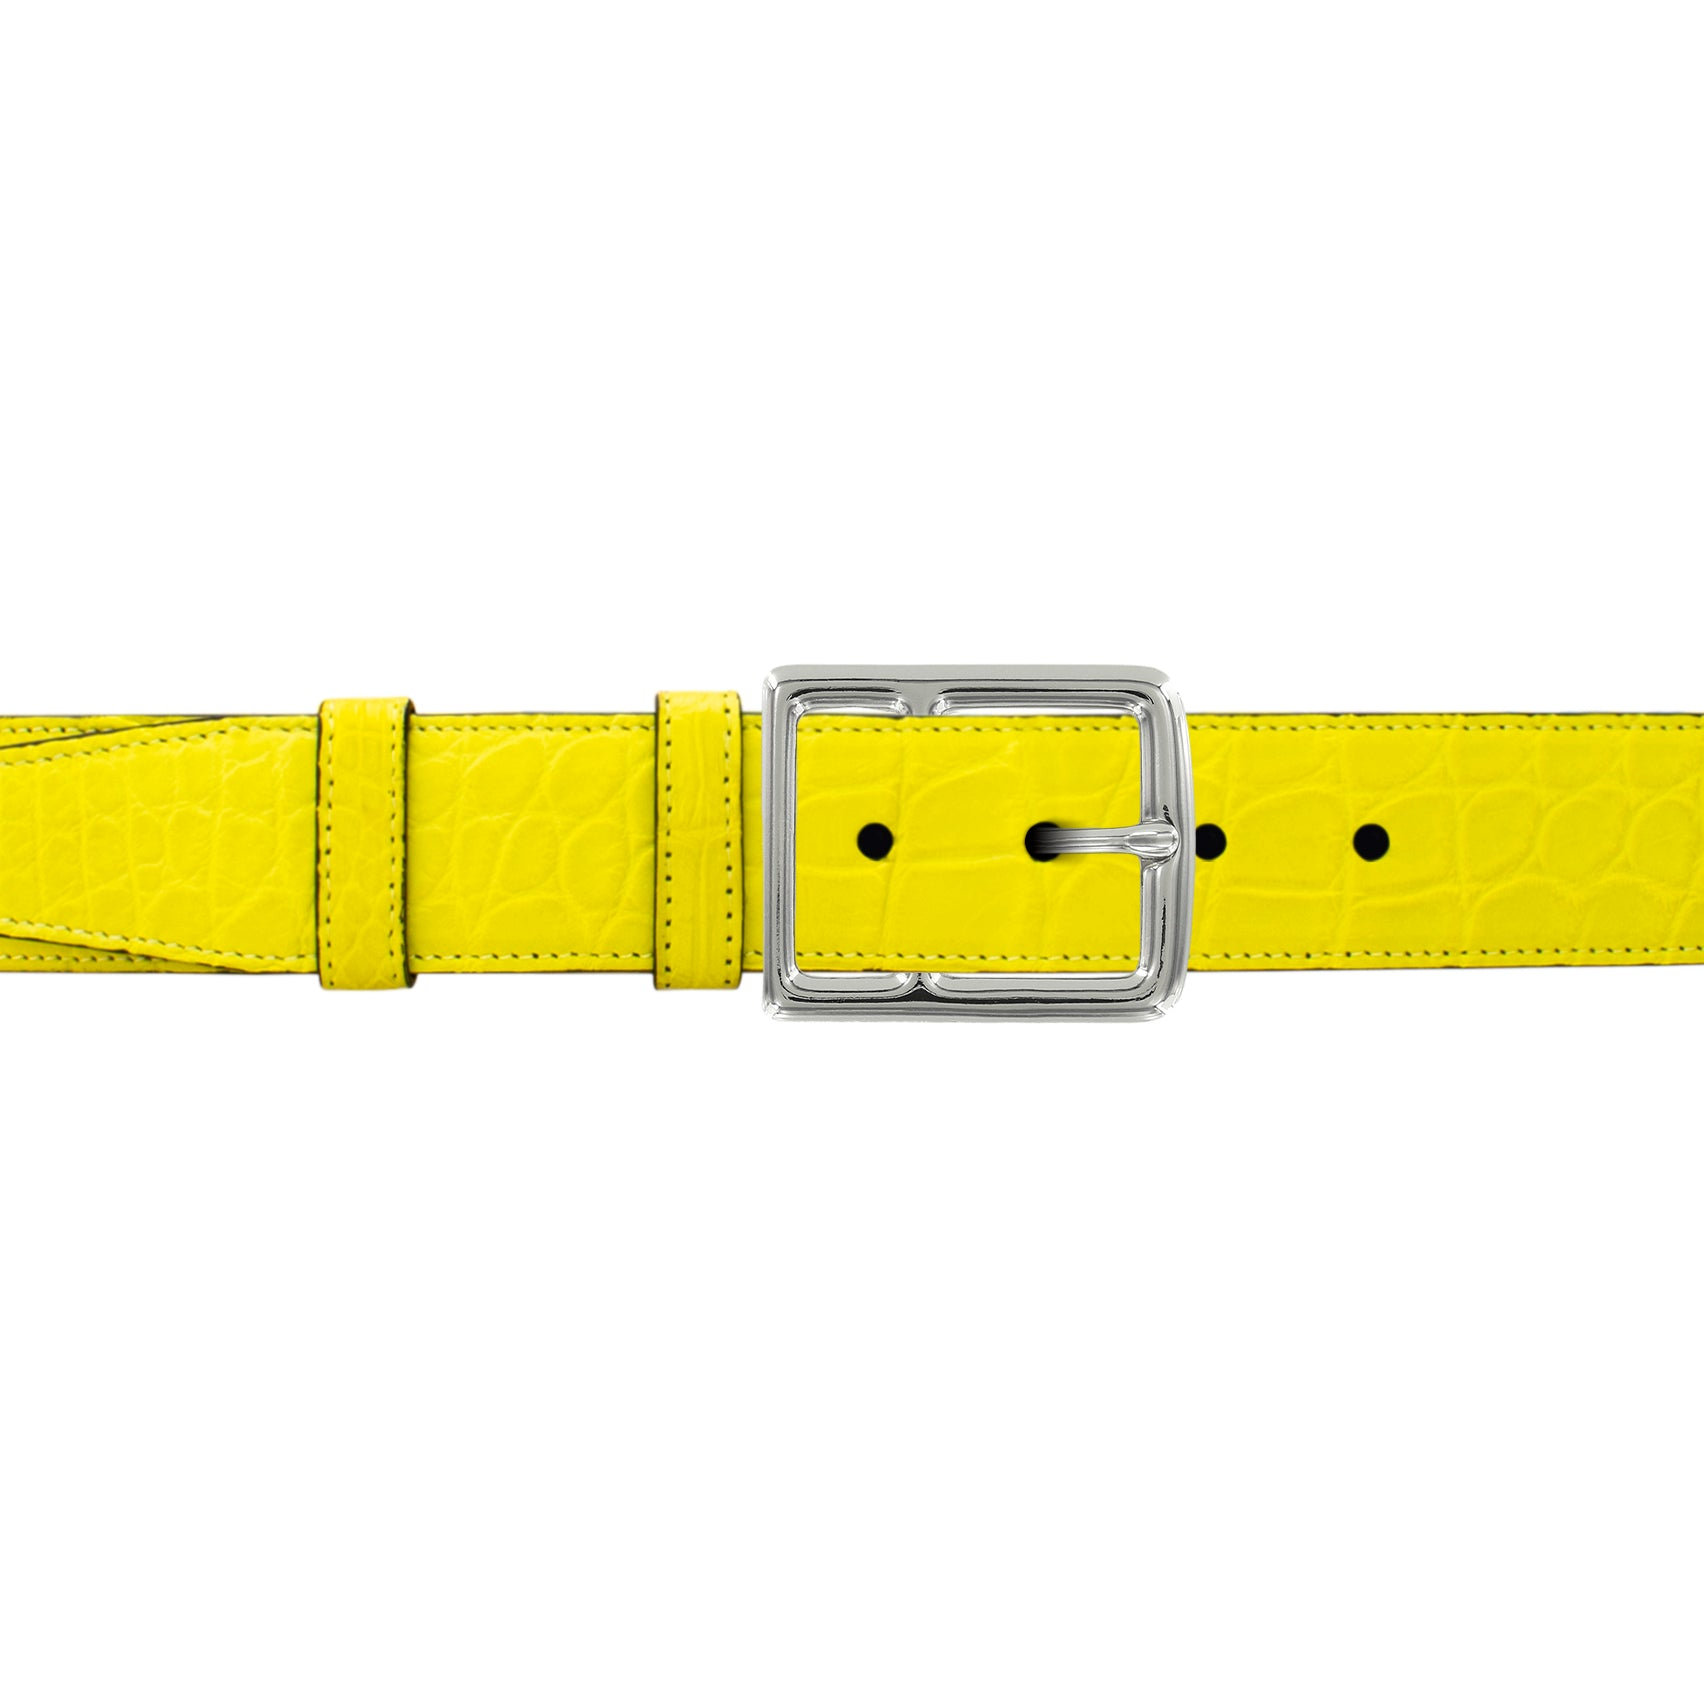 "1 1/2"" Canary Seasonal Belt with Crawford Casual Buckle in Polished Nickel"